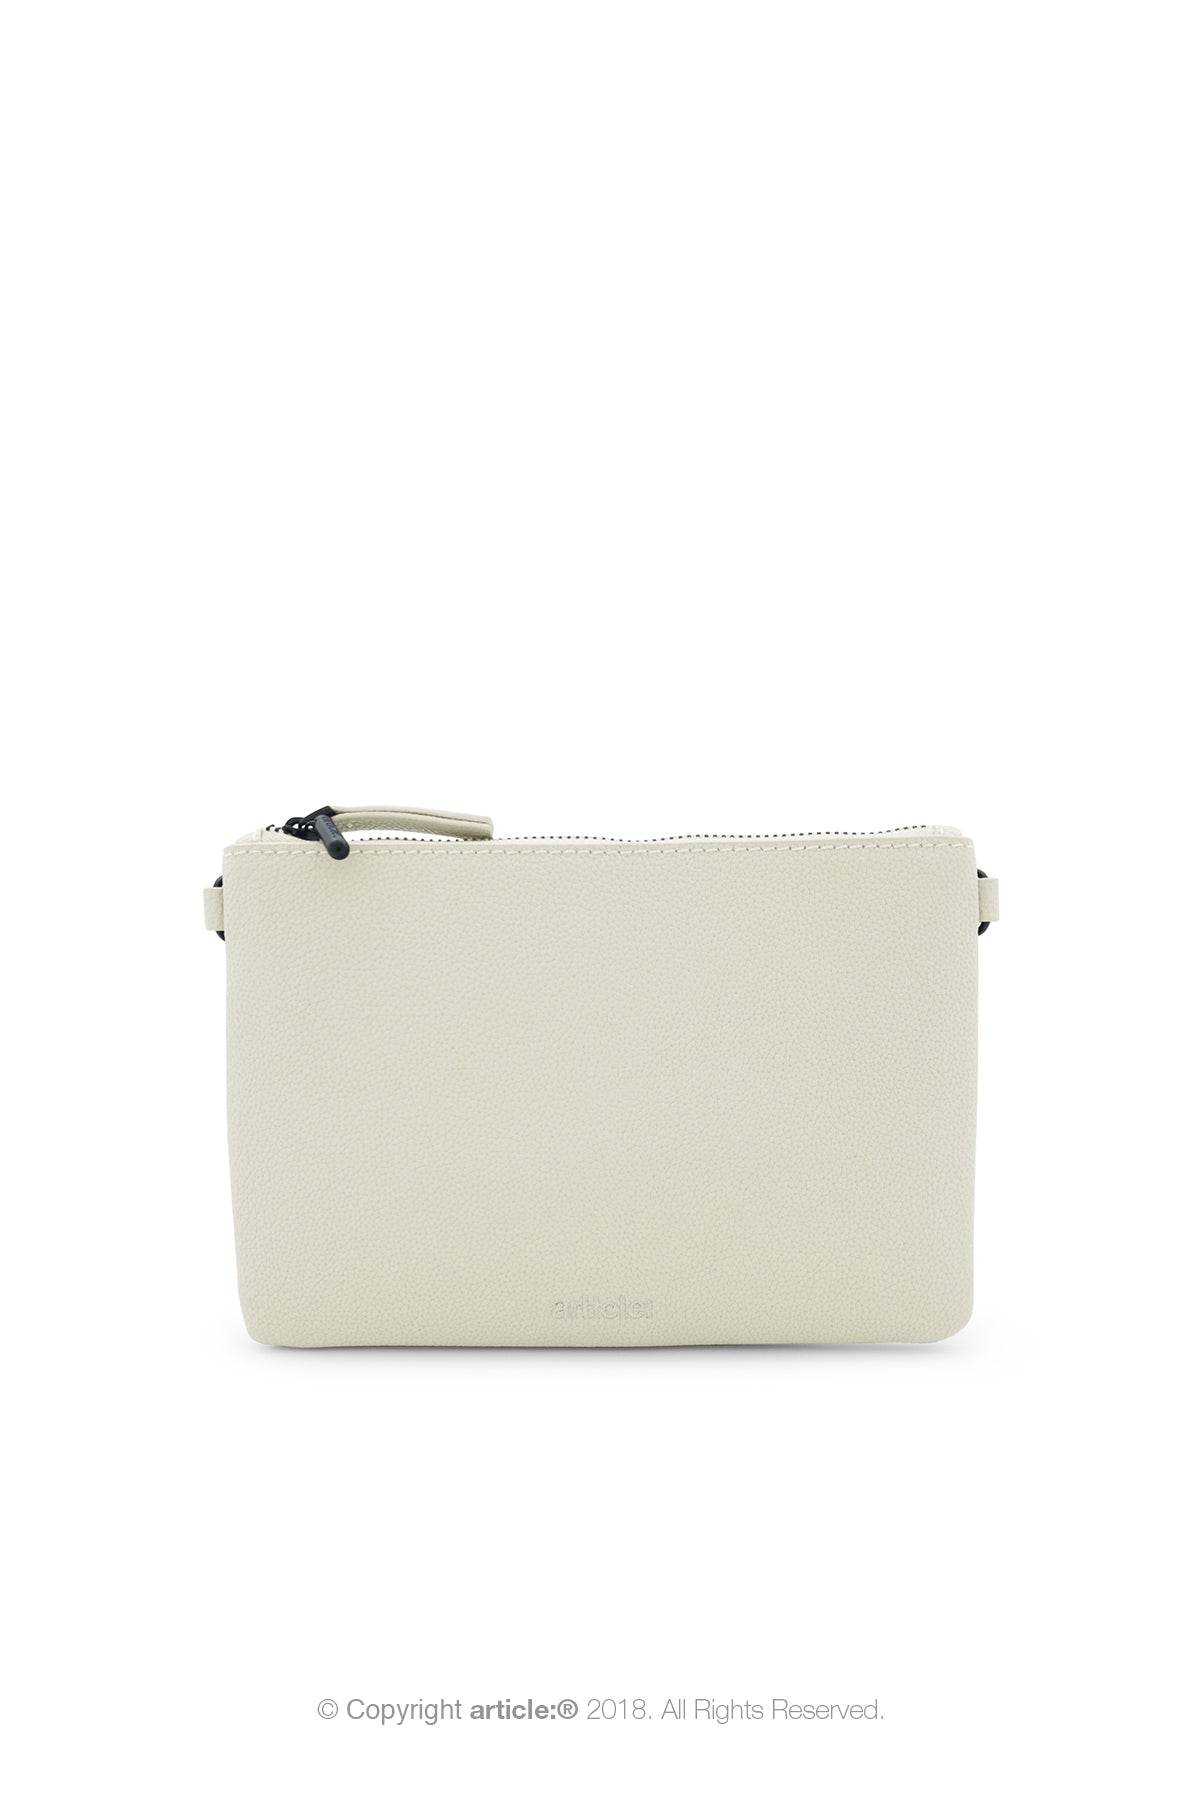 article: #001 Pochette Flat - Oyster